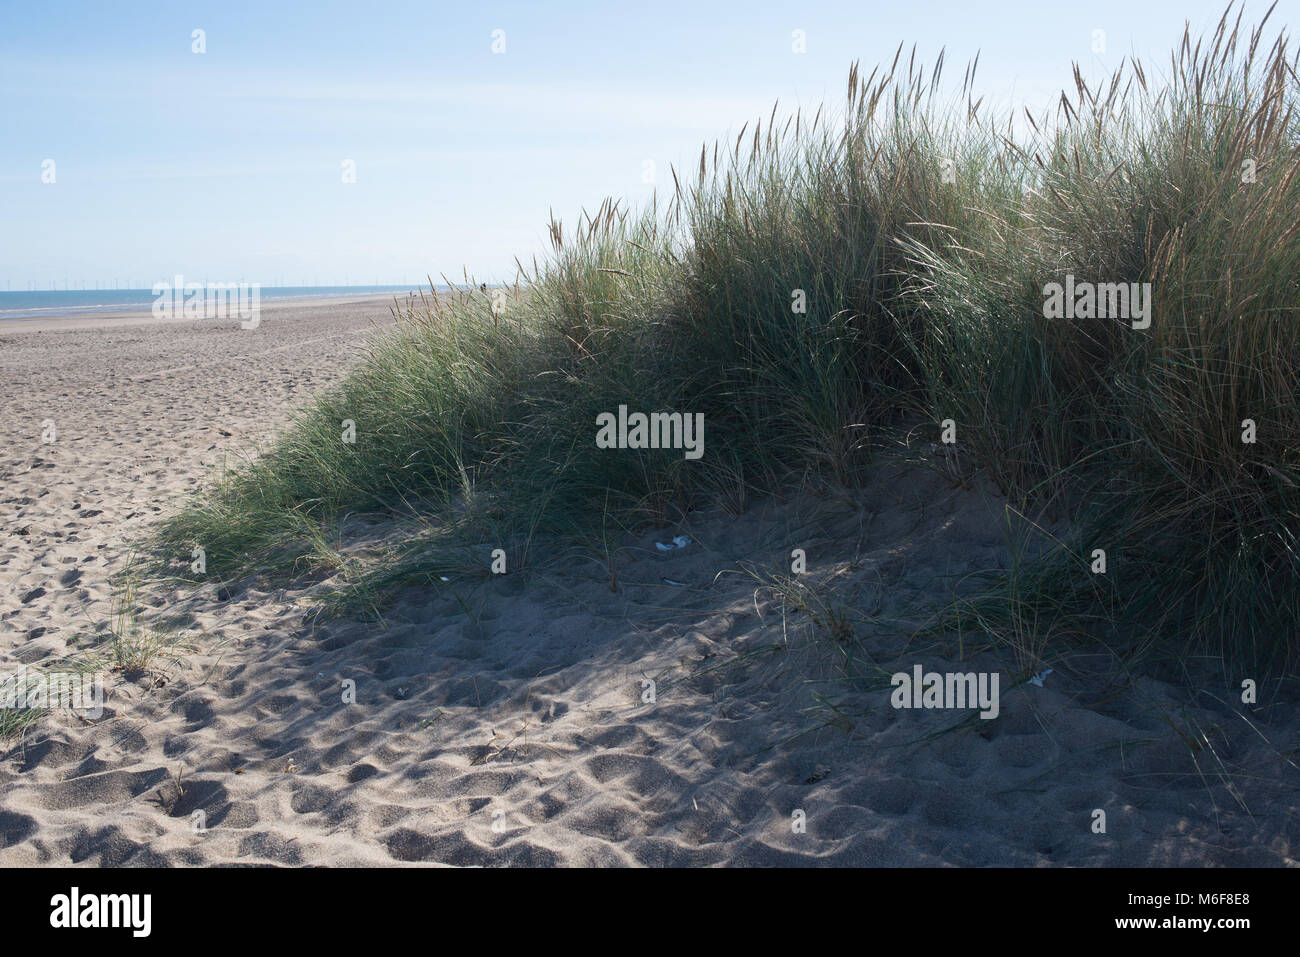 The mix of lyme grass and marram on the sand dunes near Skegness in Lincolnshire form a barrier to prevent erosion. - Stock Image